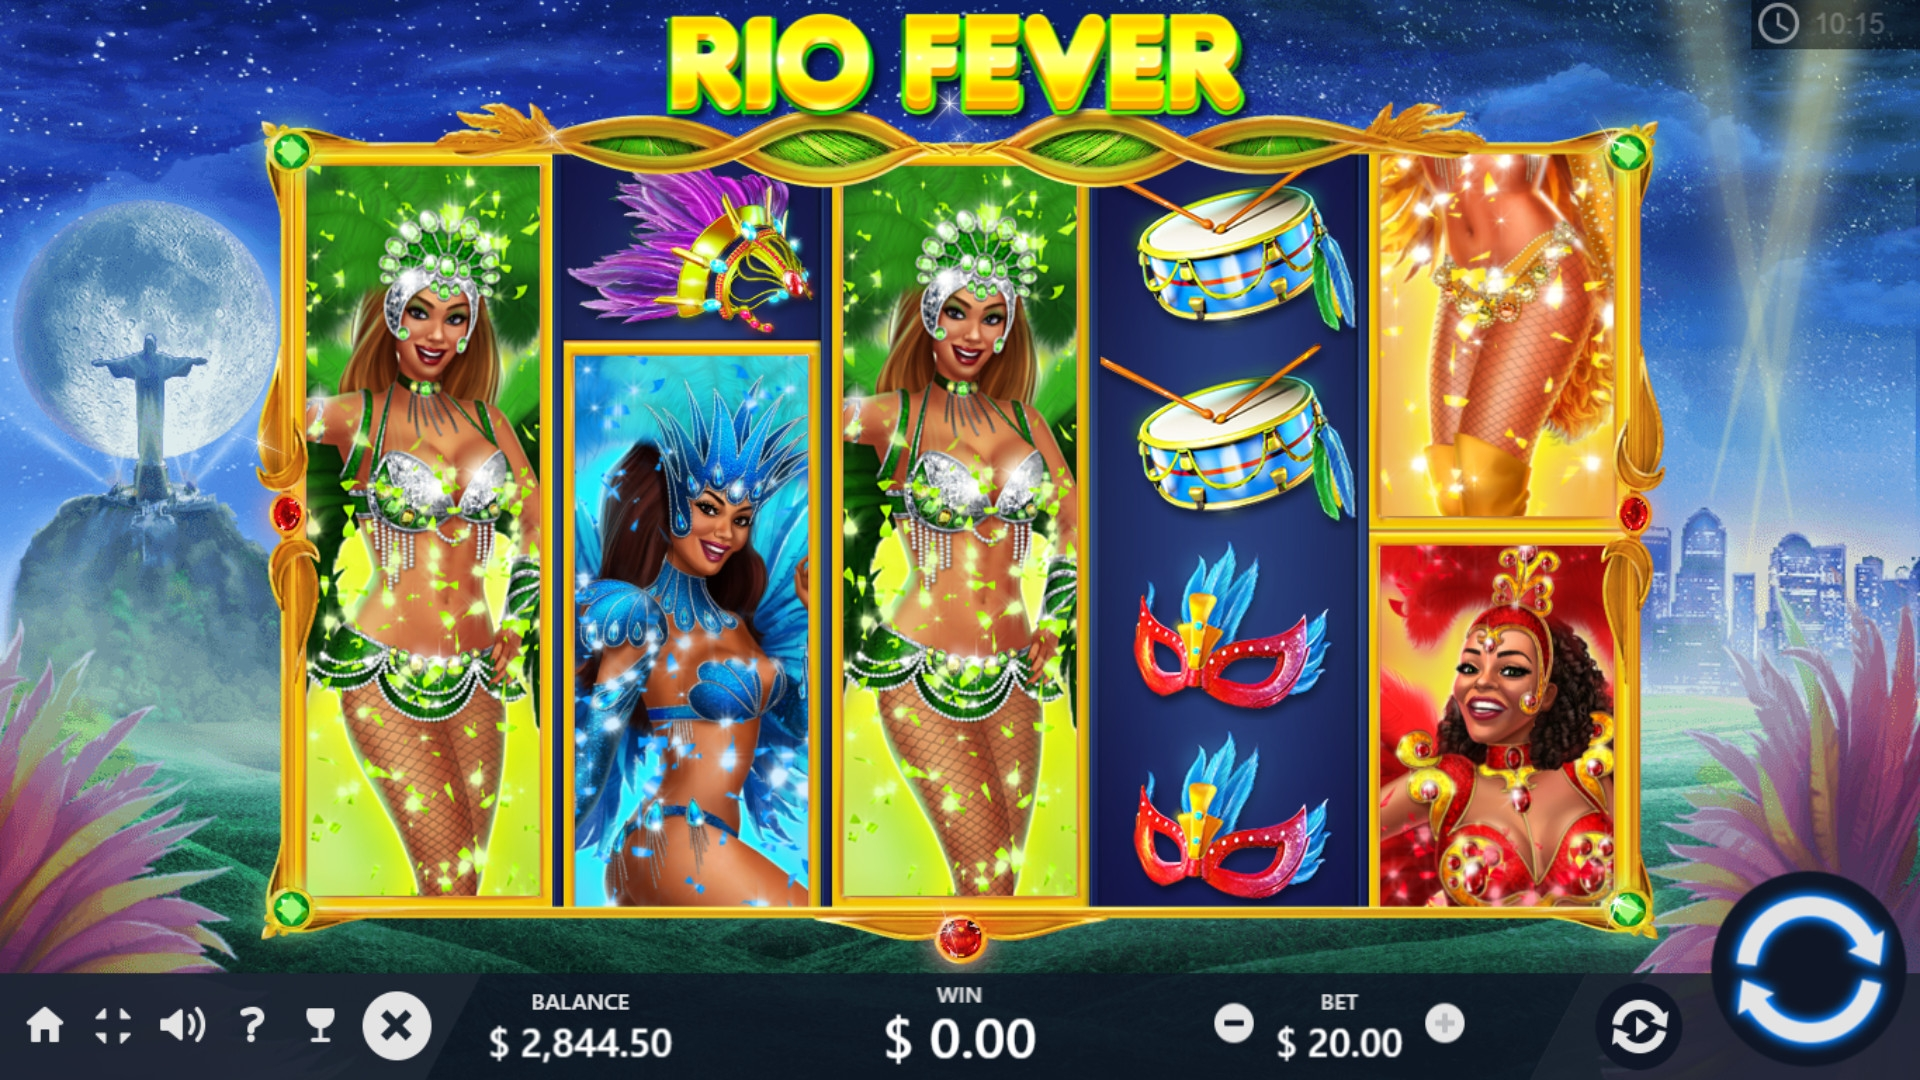 Rio Fever (Rio Fever) from category Slots